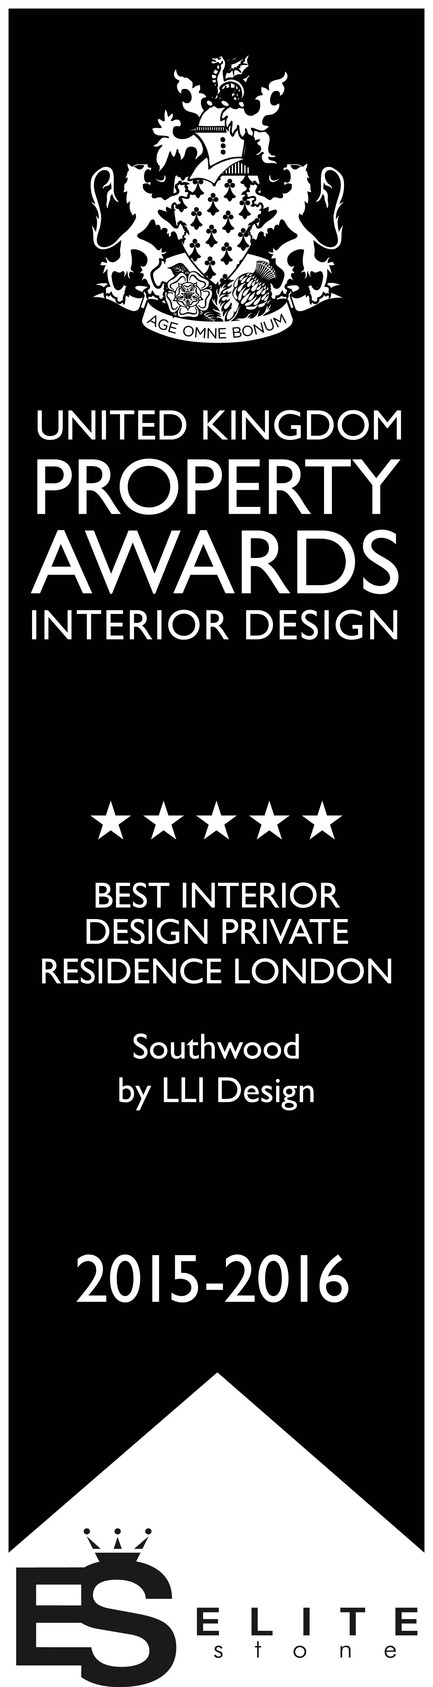 Press kit | 1701-02 - Press release | Southwood -Award winning contemporary London townhouse - LLI Design - Residential Interior Design - Southwood - Best Interior Design Private Residence, London - UK Property Awards - 2015 / 16 - Photo credit: United Kingdom Property Awards